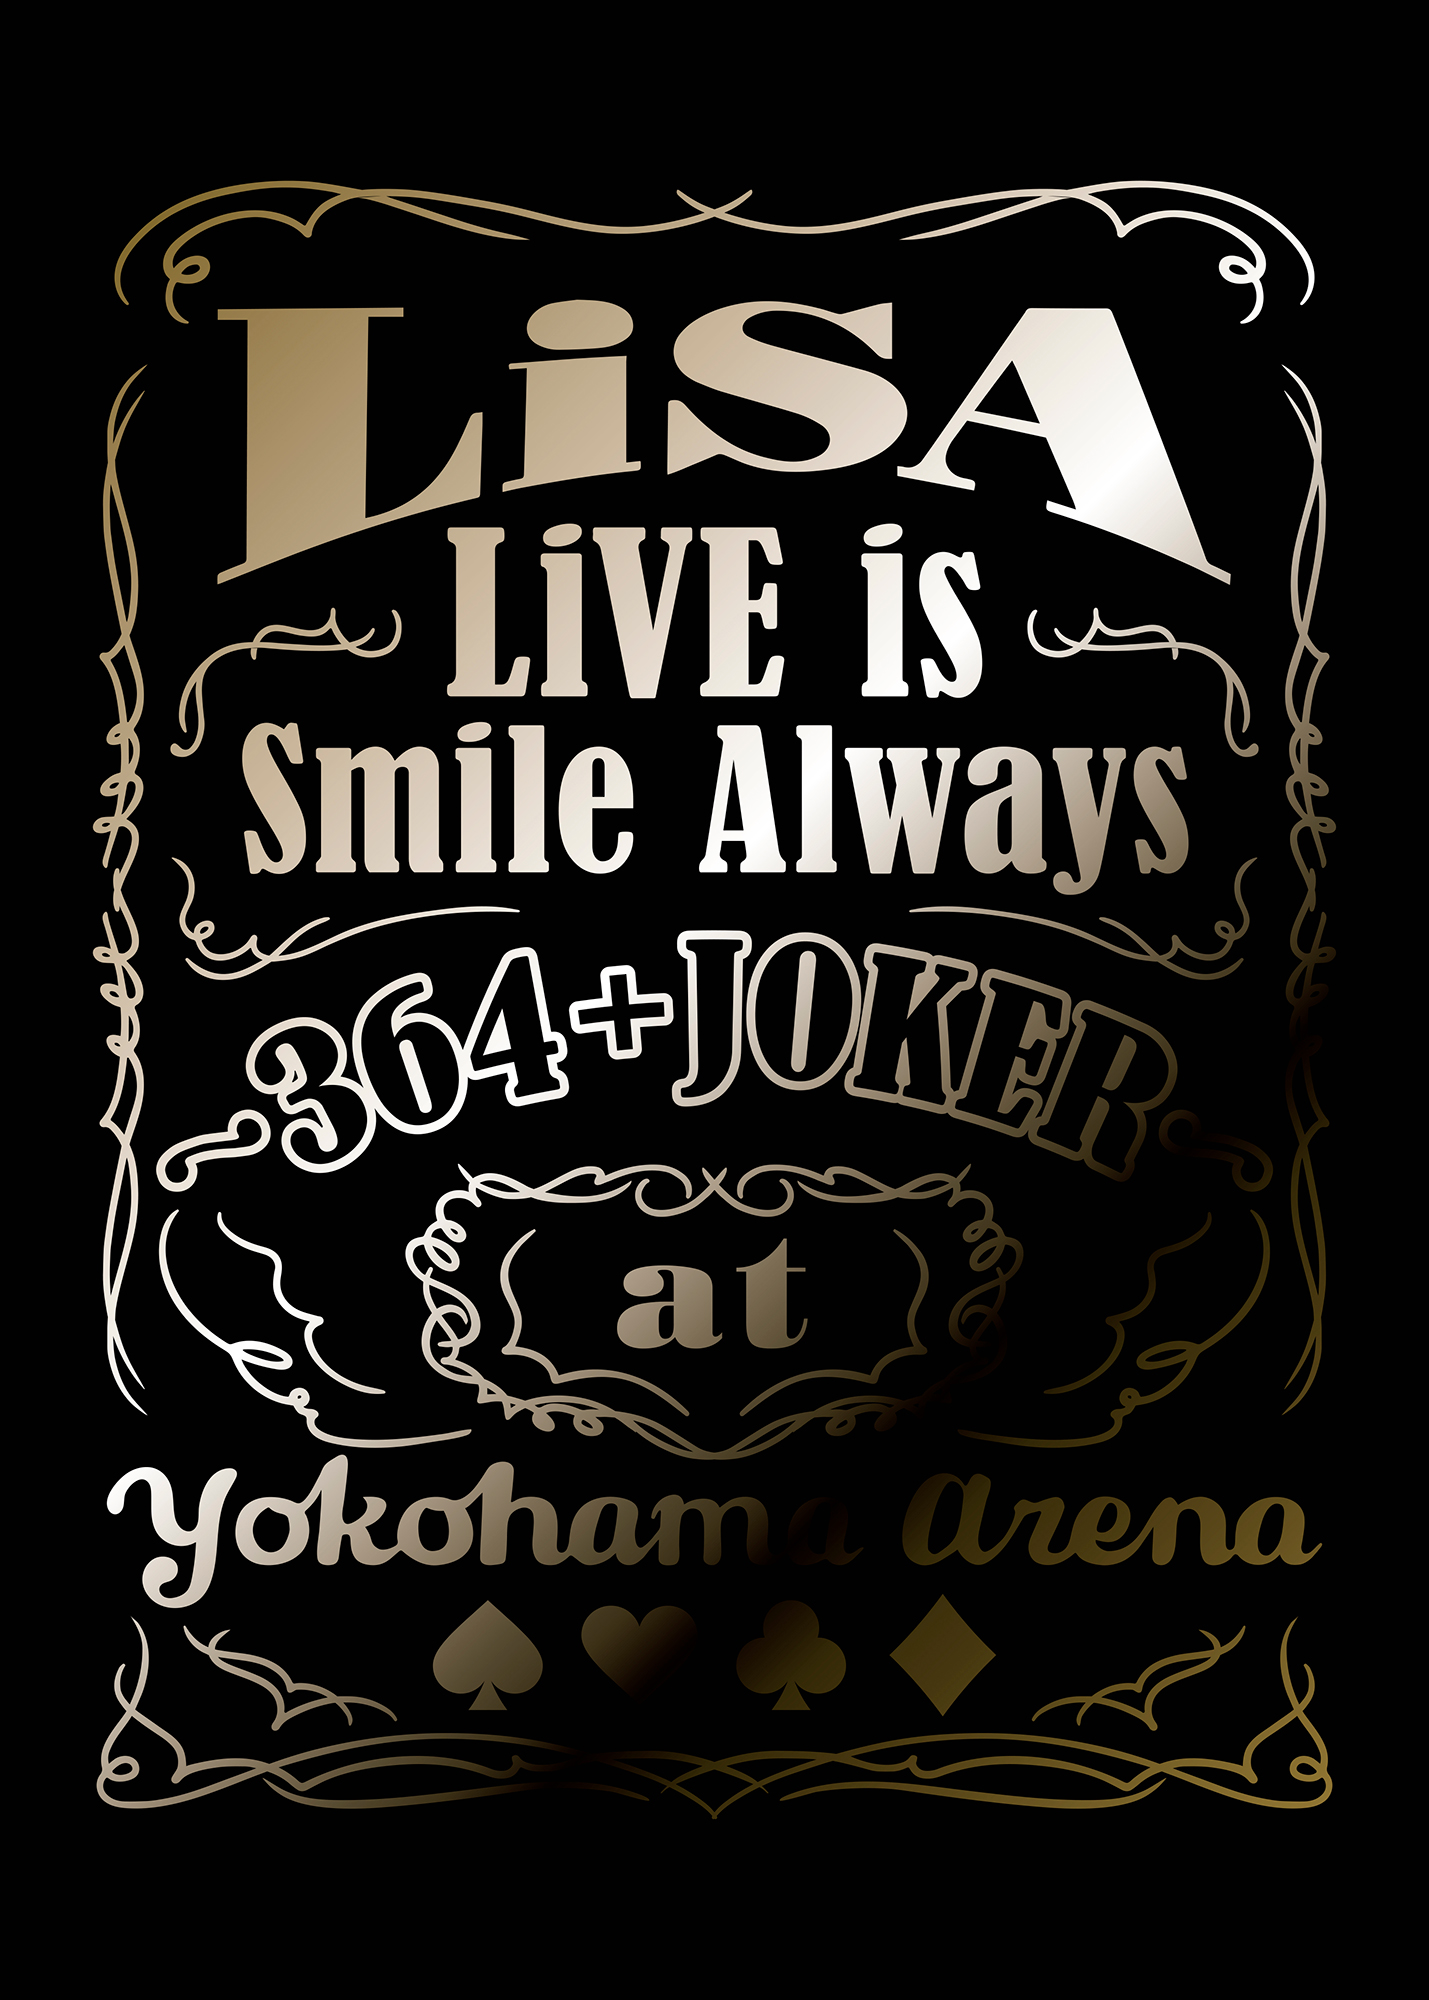 「LiVE is Smile Always~364+JOKER~ at YOKOHAMA ARENA」完全数量生産限定盤